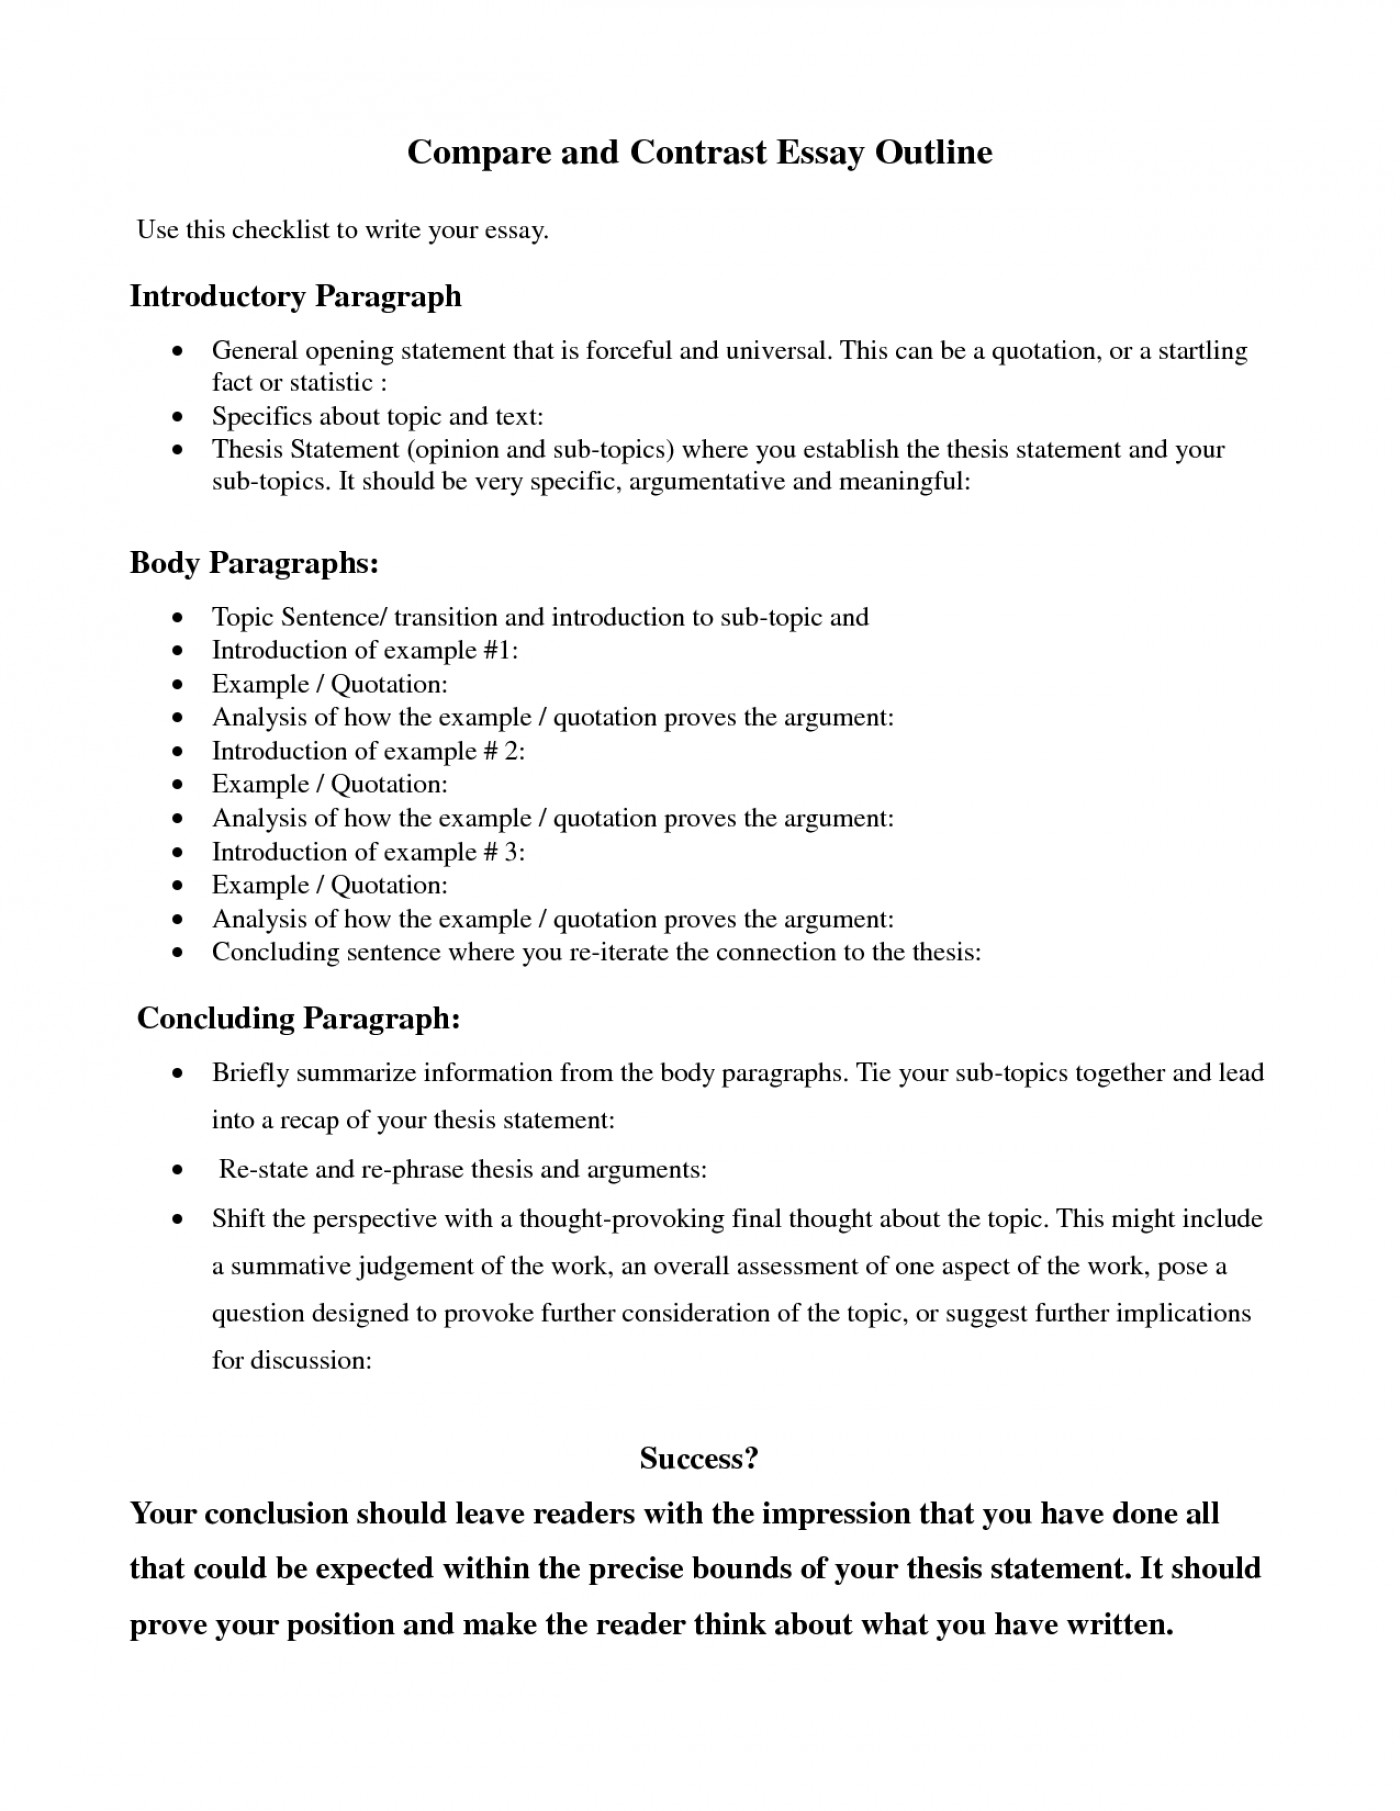 003 Satirical Essay Topics Thesis Statement For Compare And